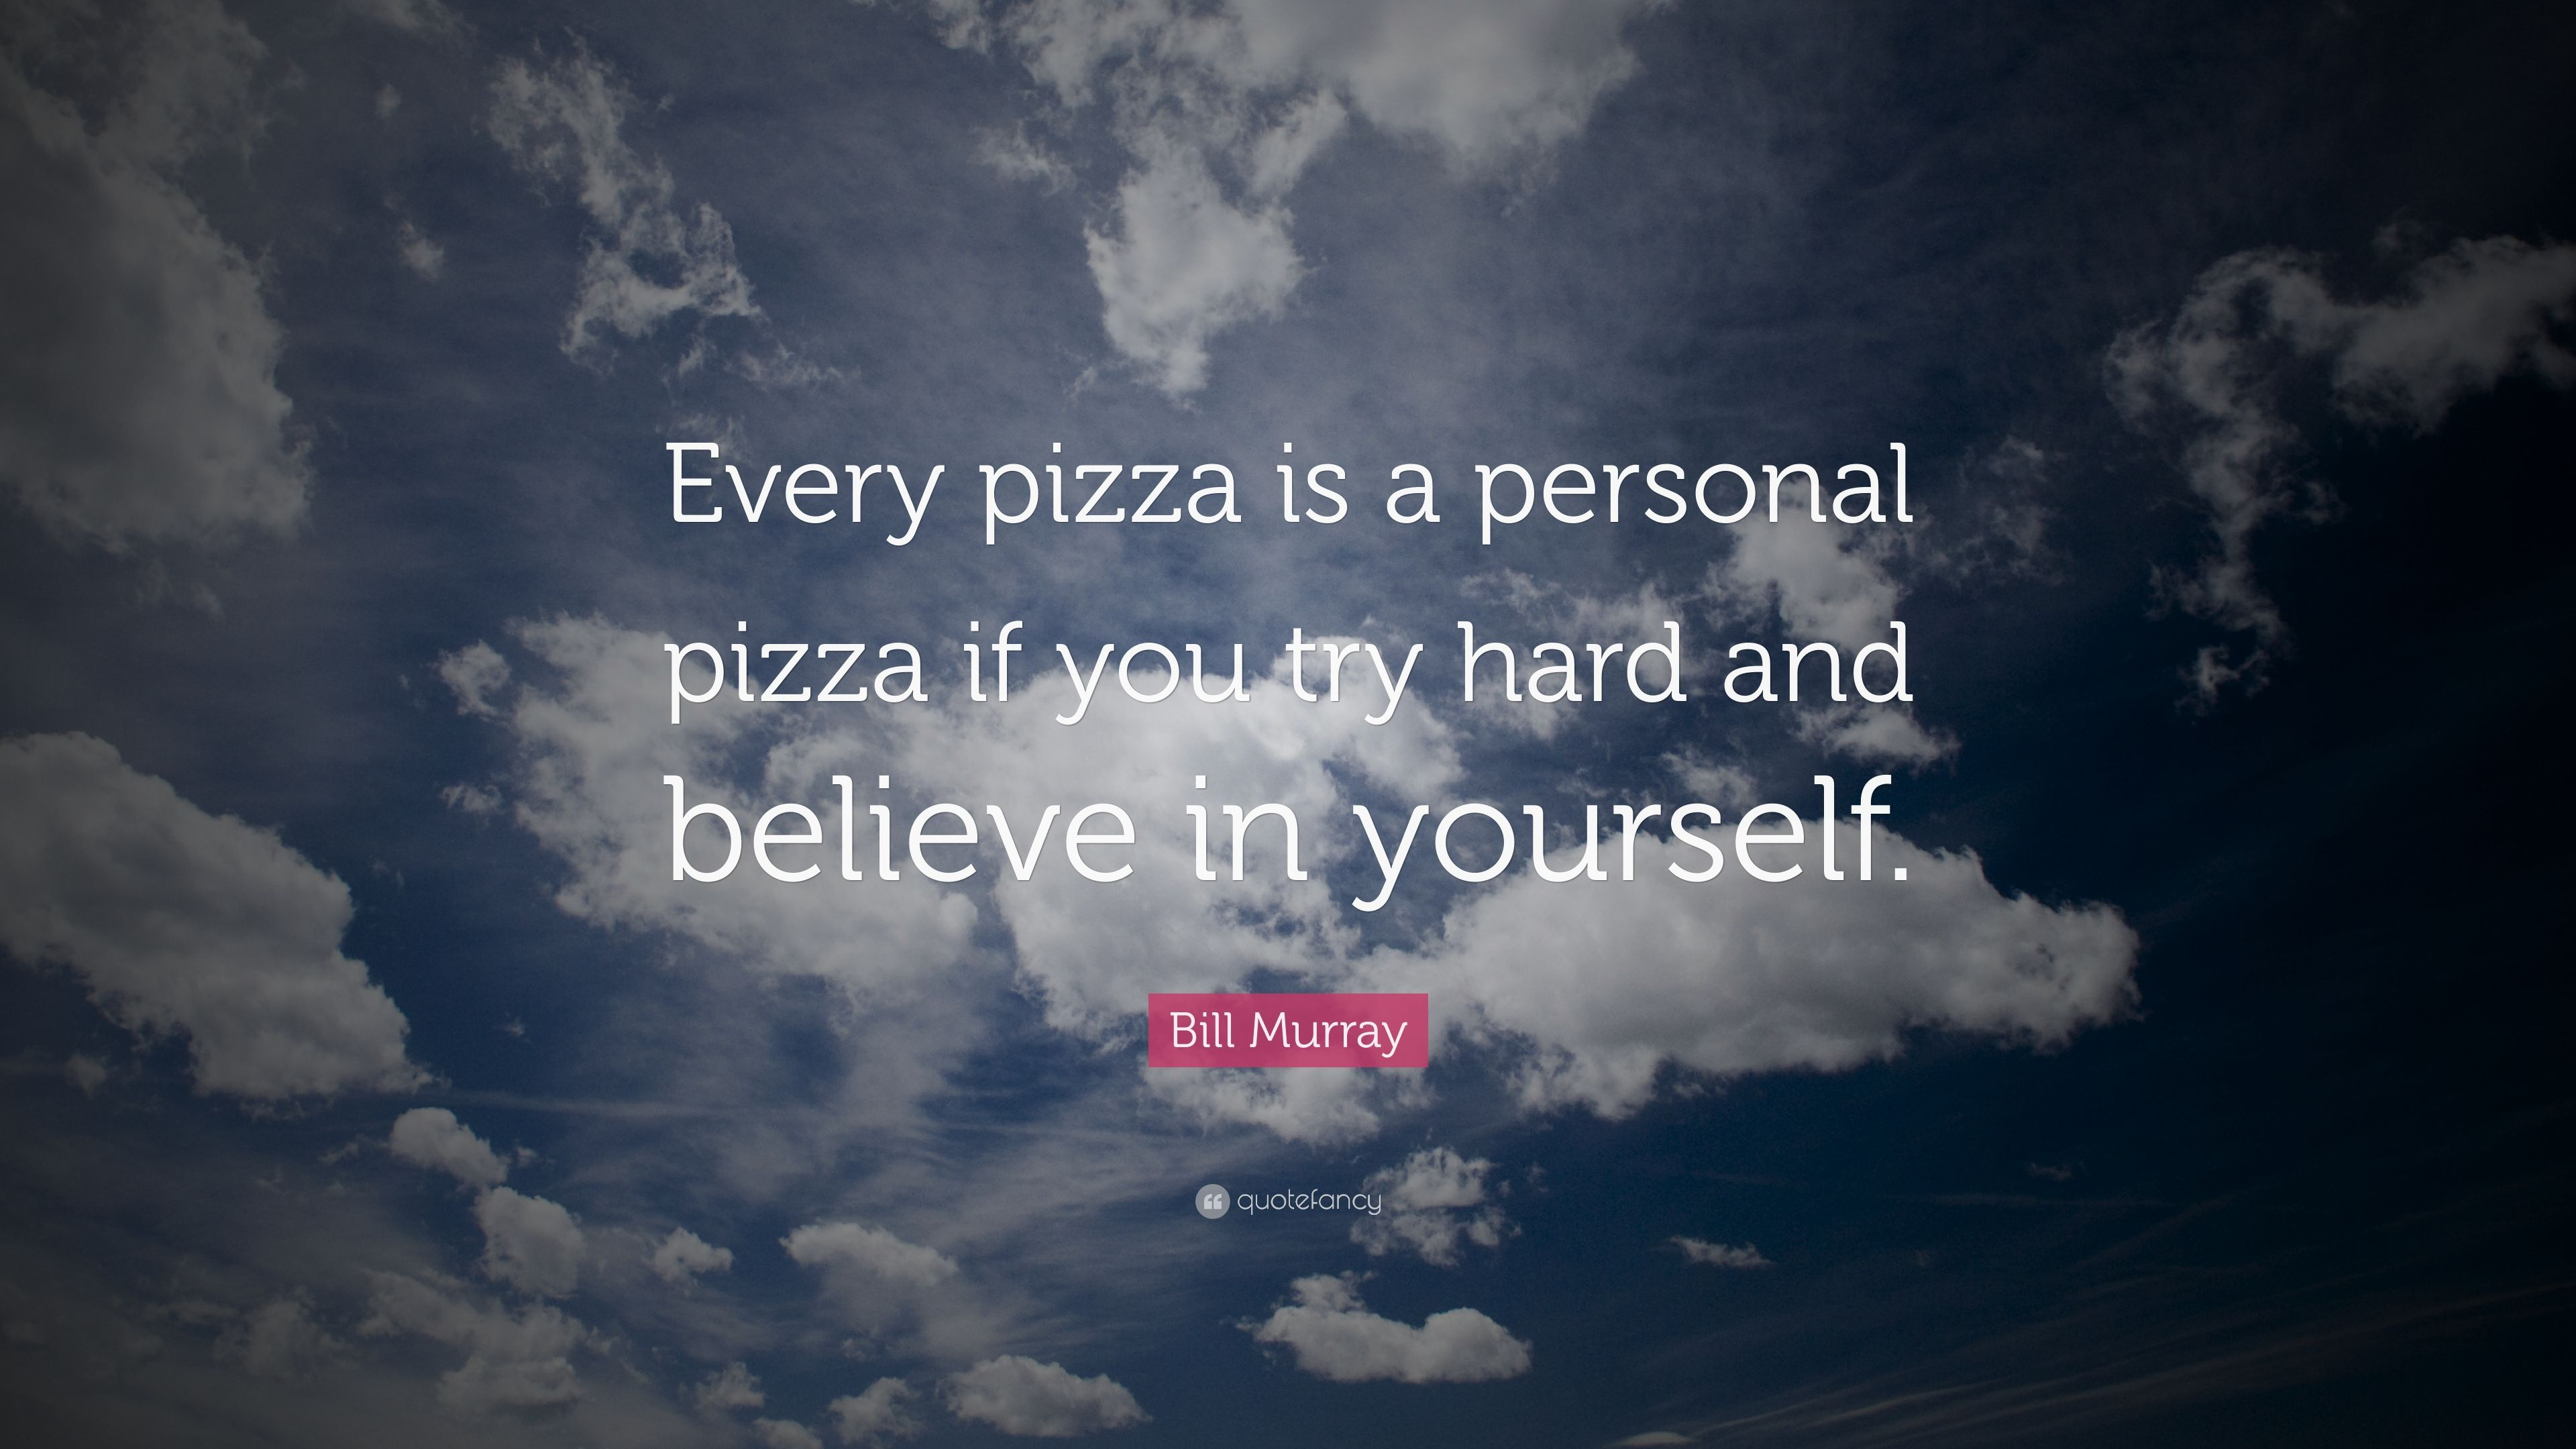 Bill Murray Pizza Quote Facebook thumbnail